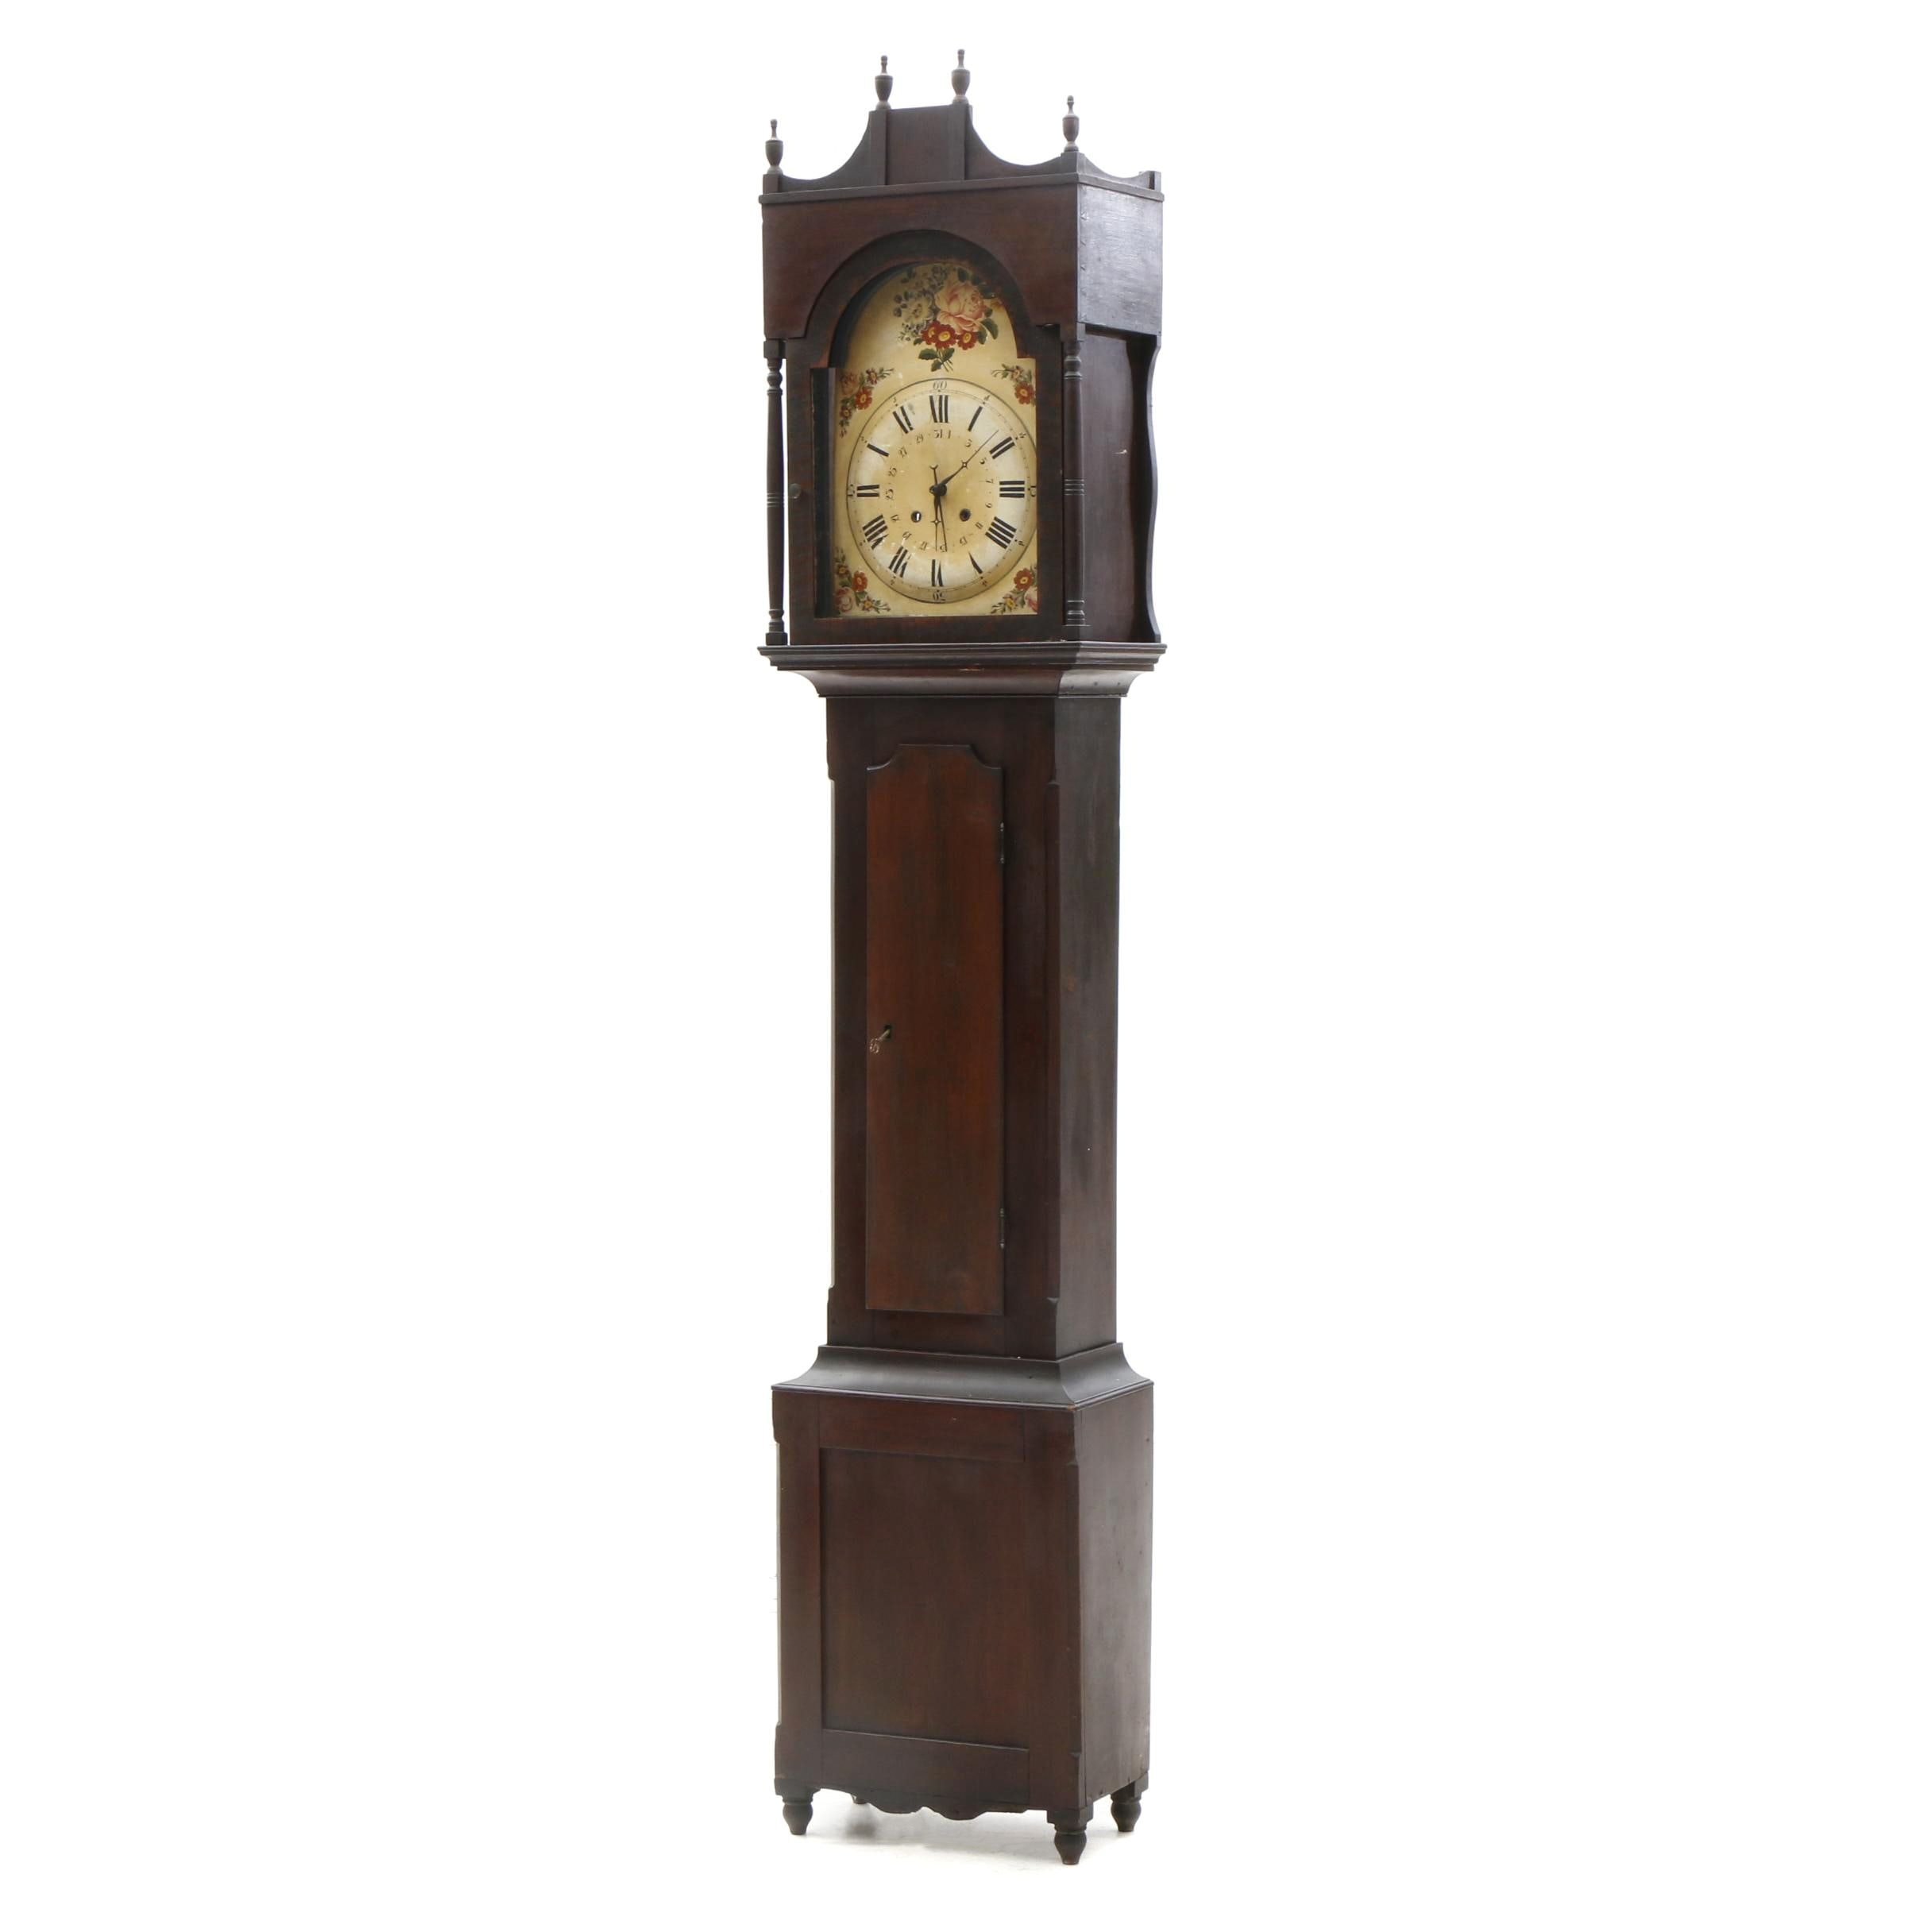 American Tall Case Clock, Early 19th Century